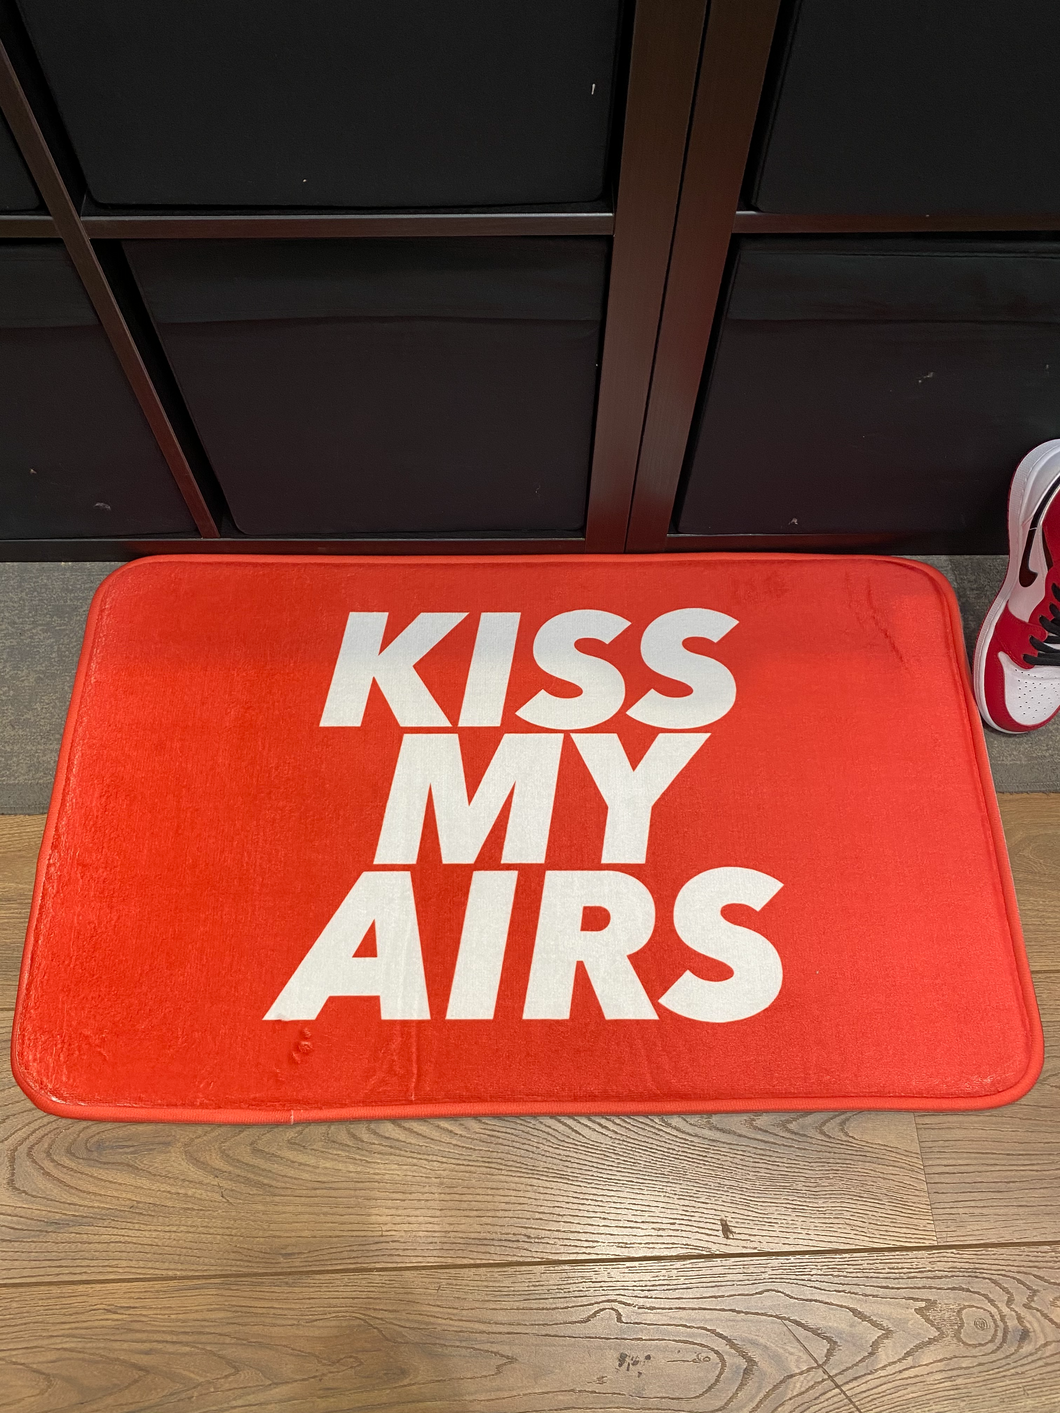 Tapis Lifestyle Kiss My Airs Red - L'oiseau moqueur